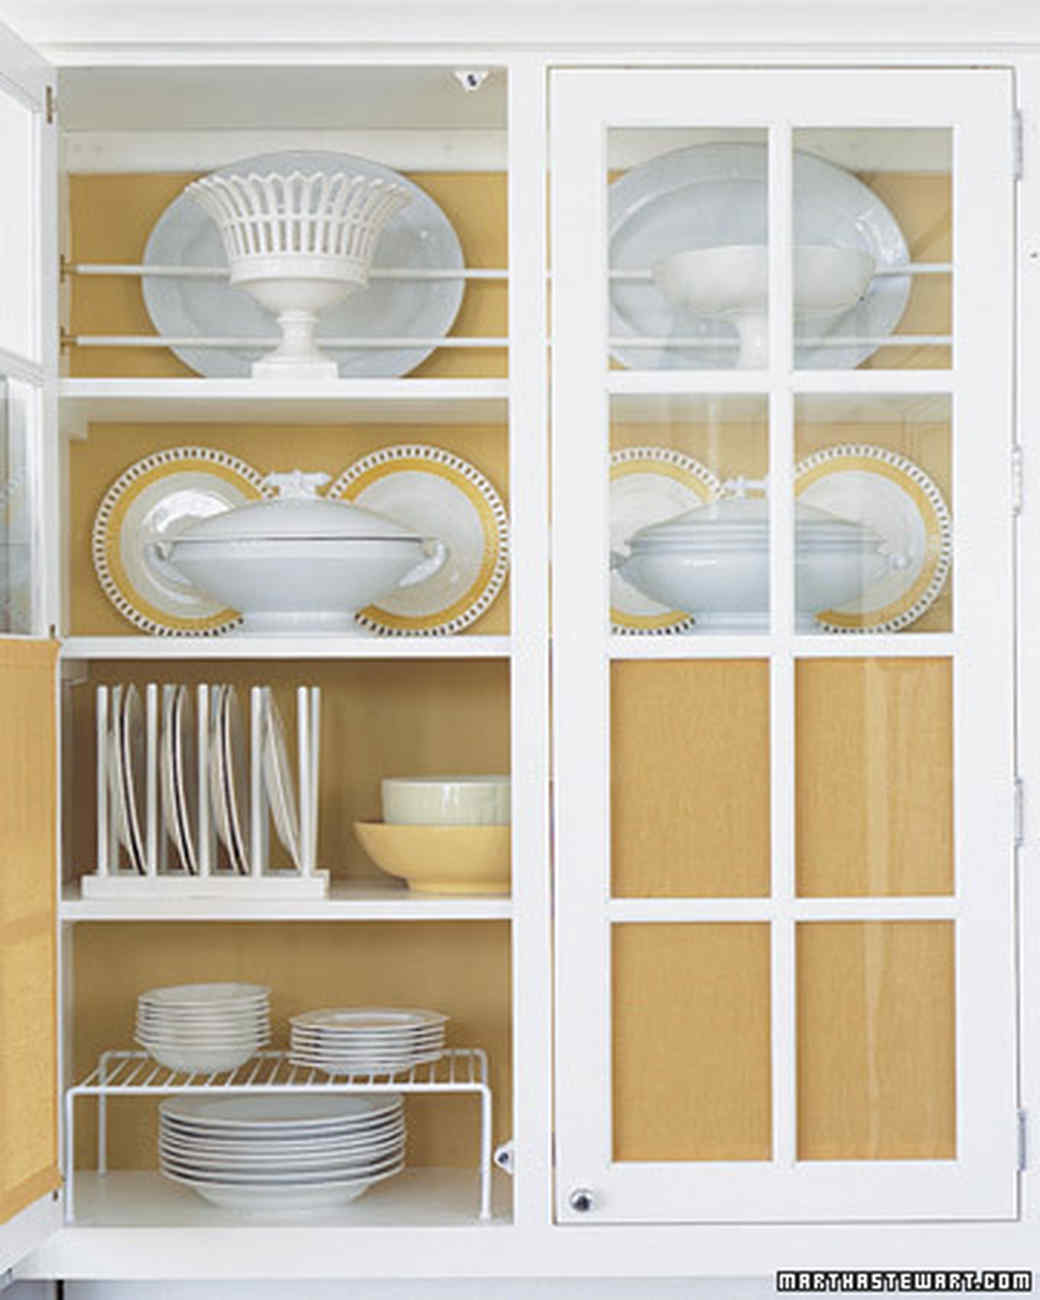 Maximize Your Exisiting Storage - Small Kitchen Storage Ideas For A More Efficient Space Martha